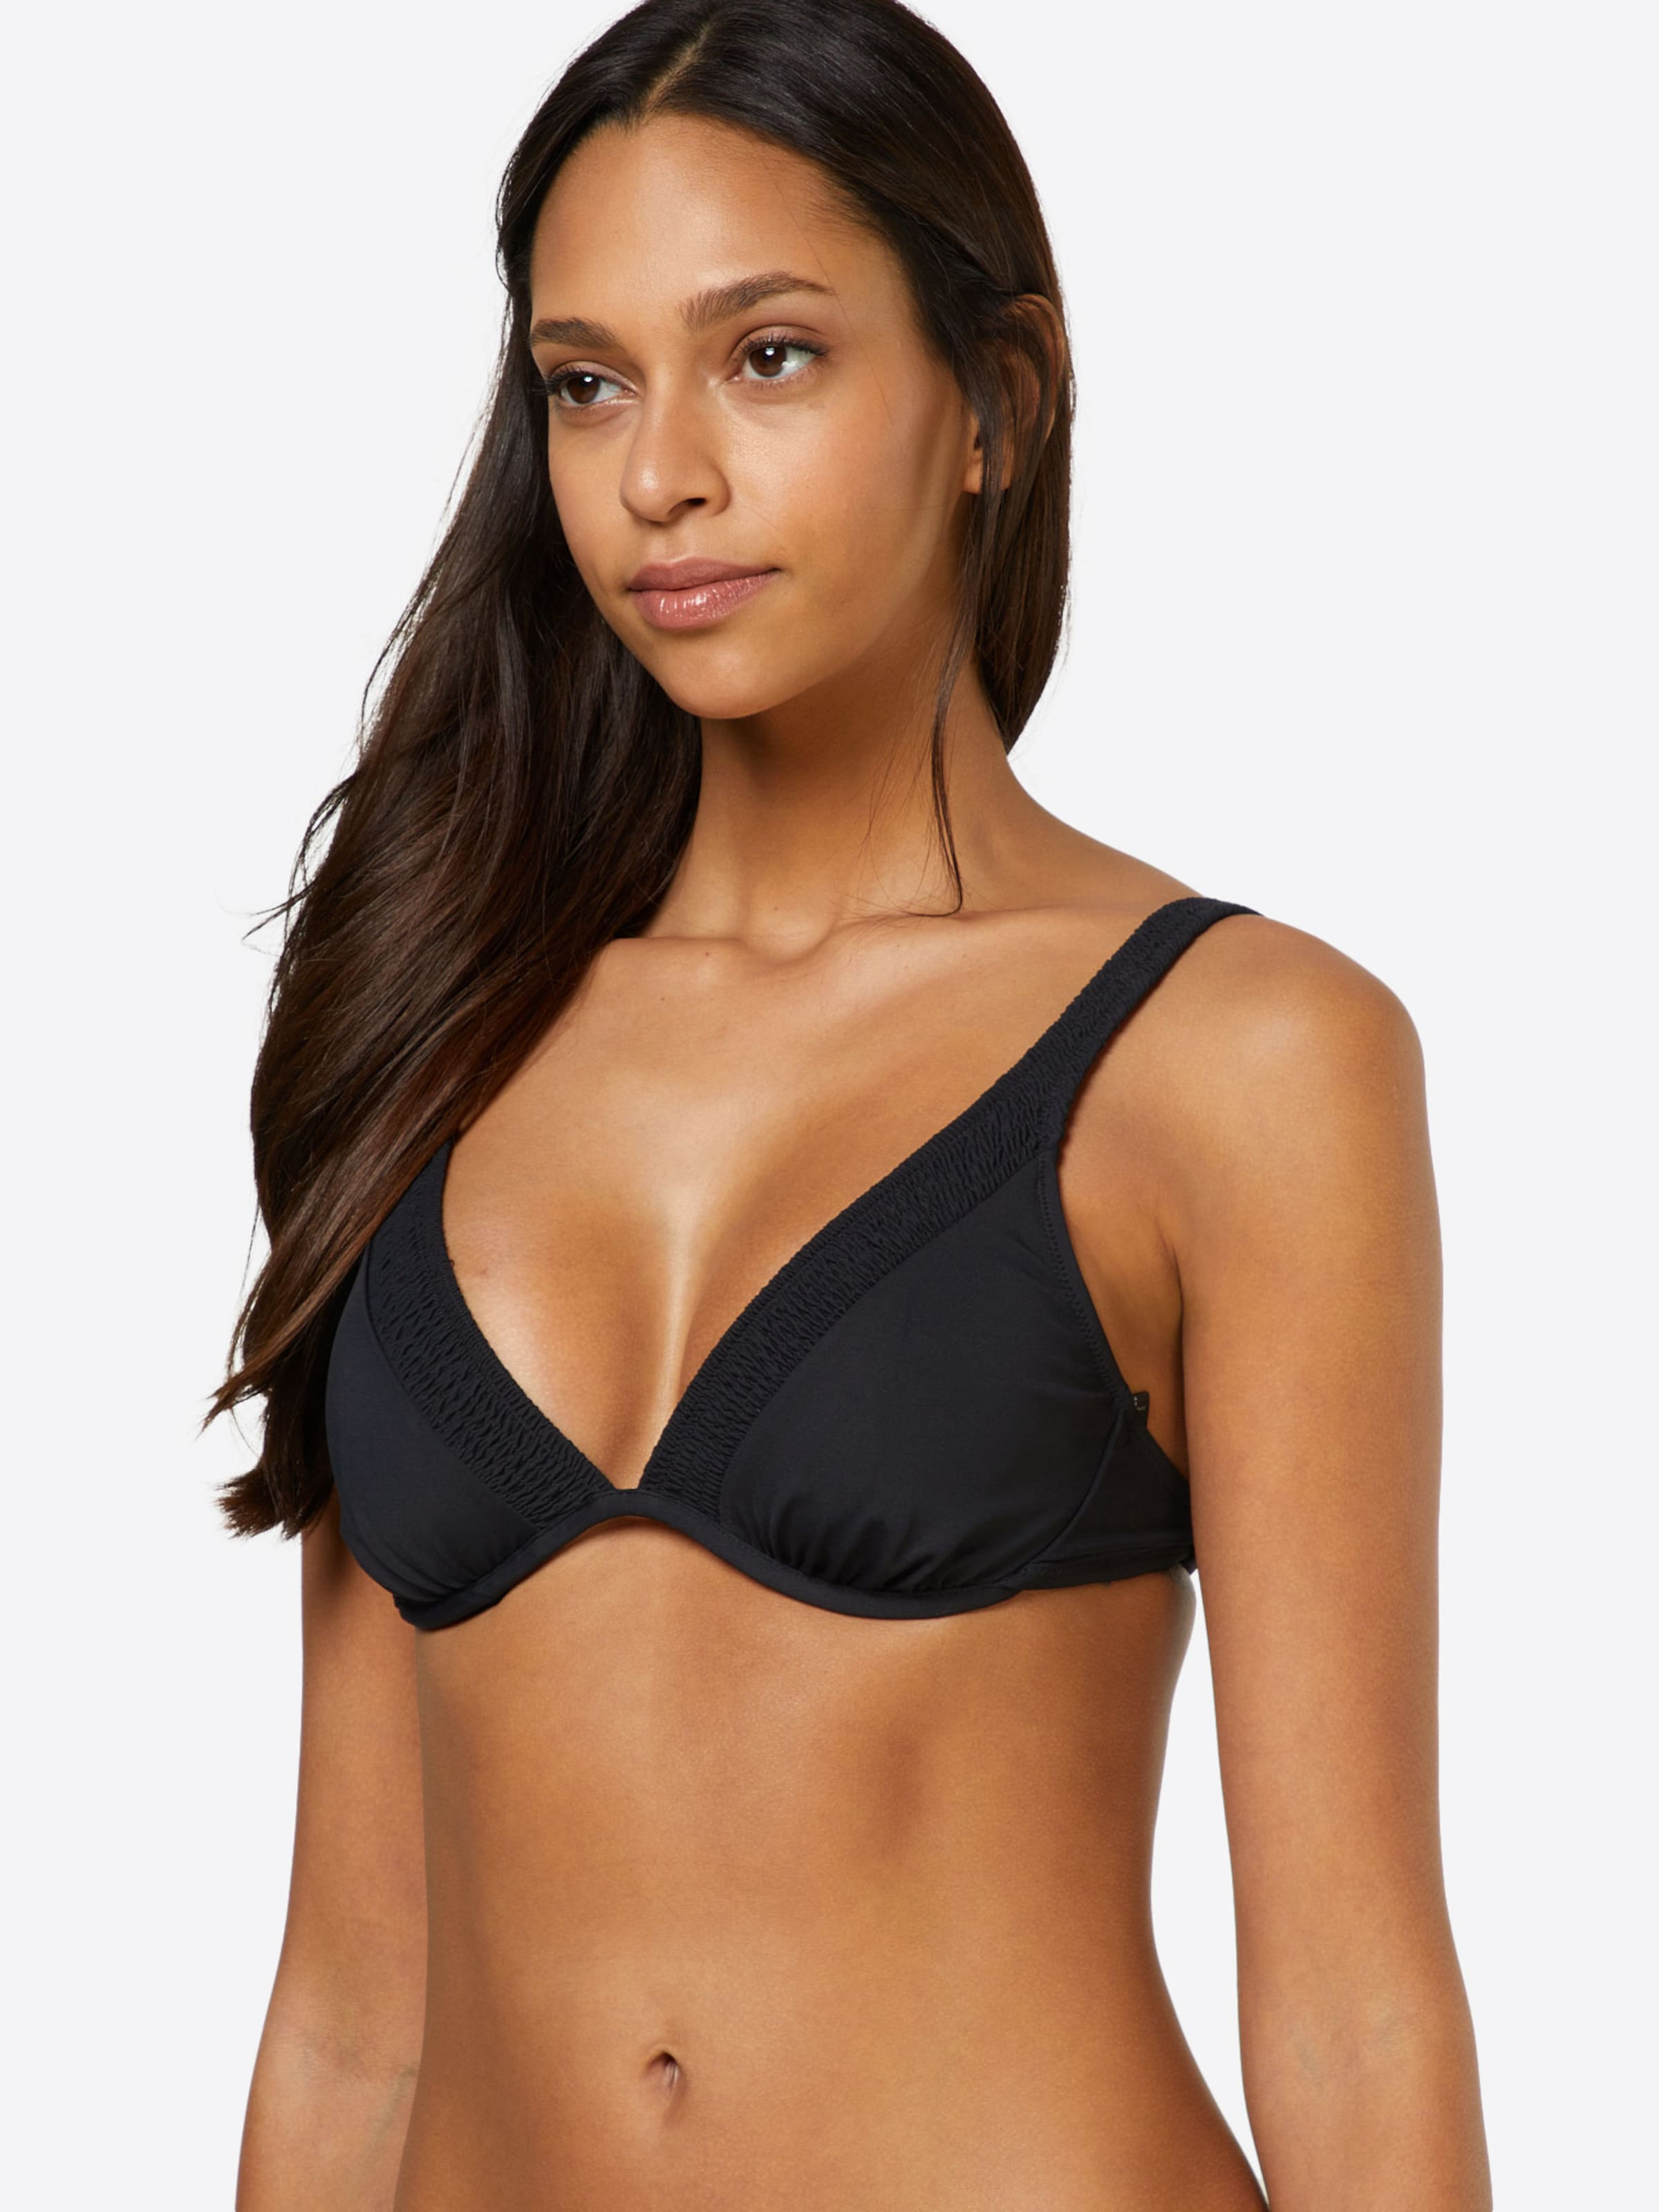 Watercult In Top Bikini Bikini Schwarz Watercult PkwO8n0